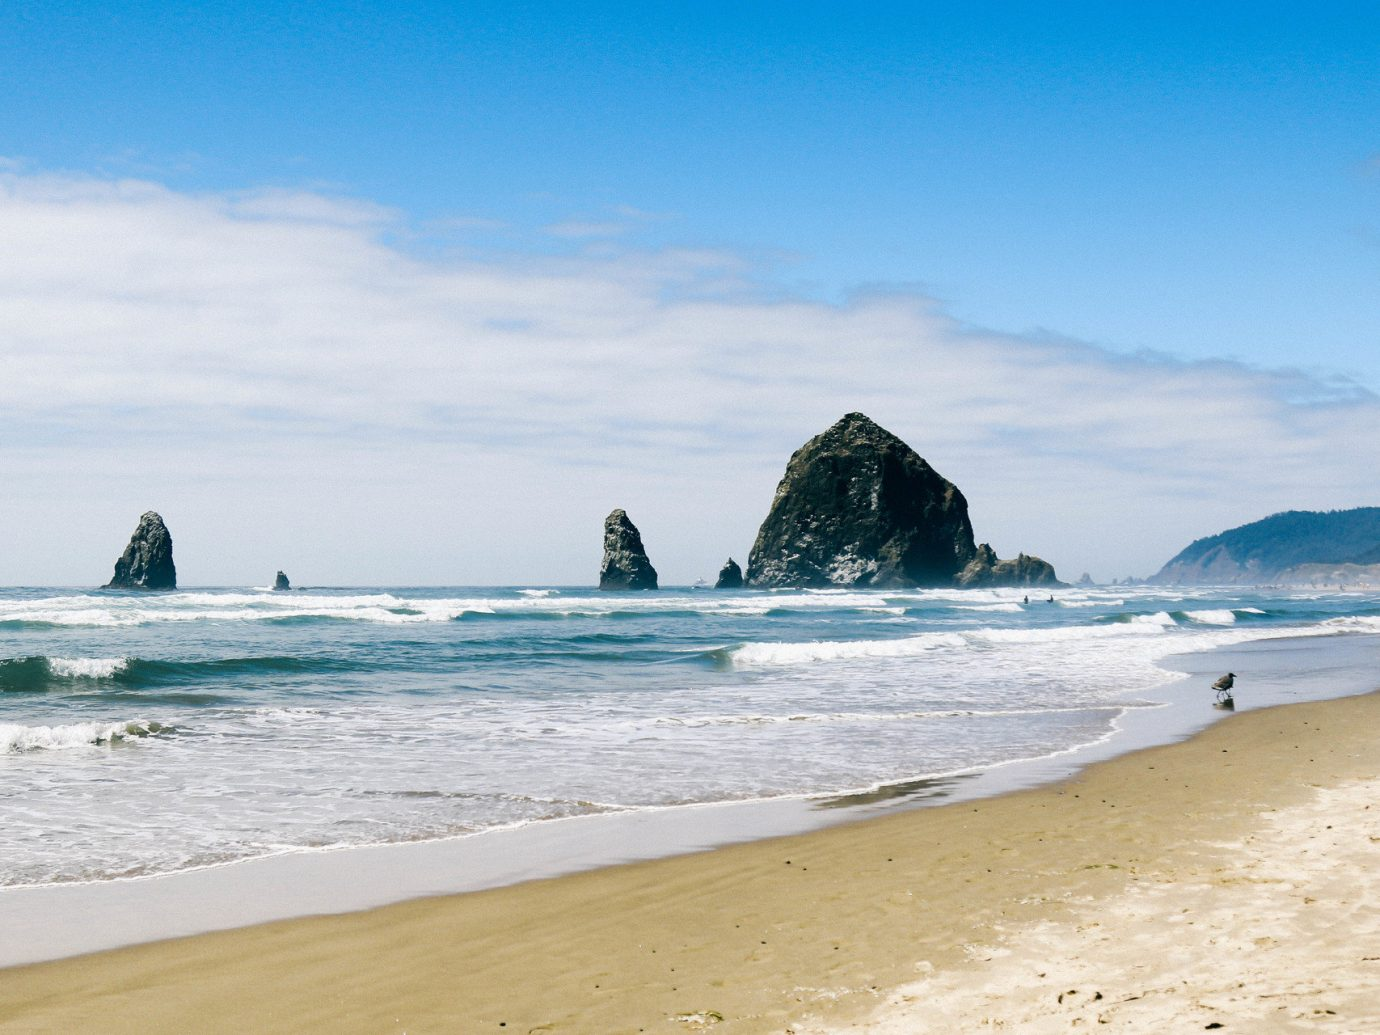 Jetsetter Guides Road Trips sky water outdoor Beach Nature Coast shore Ocean Sea body of water wind wave wave horizon vacation sand bay cape terrain sandy day